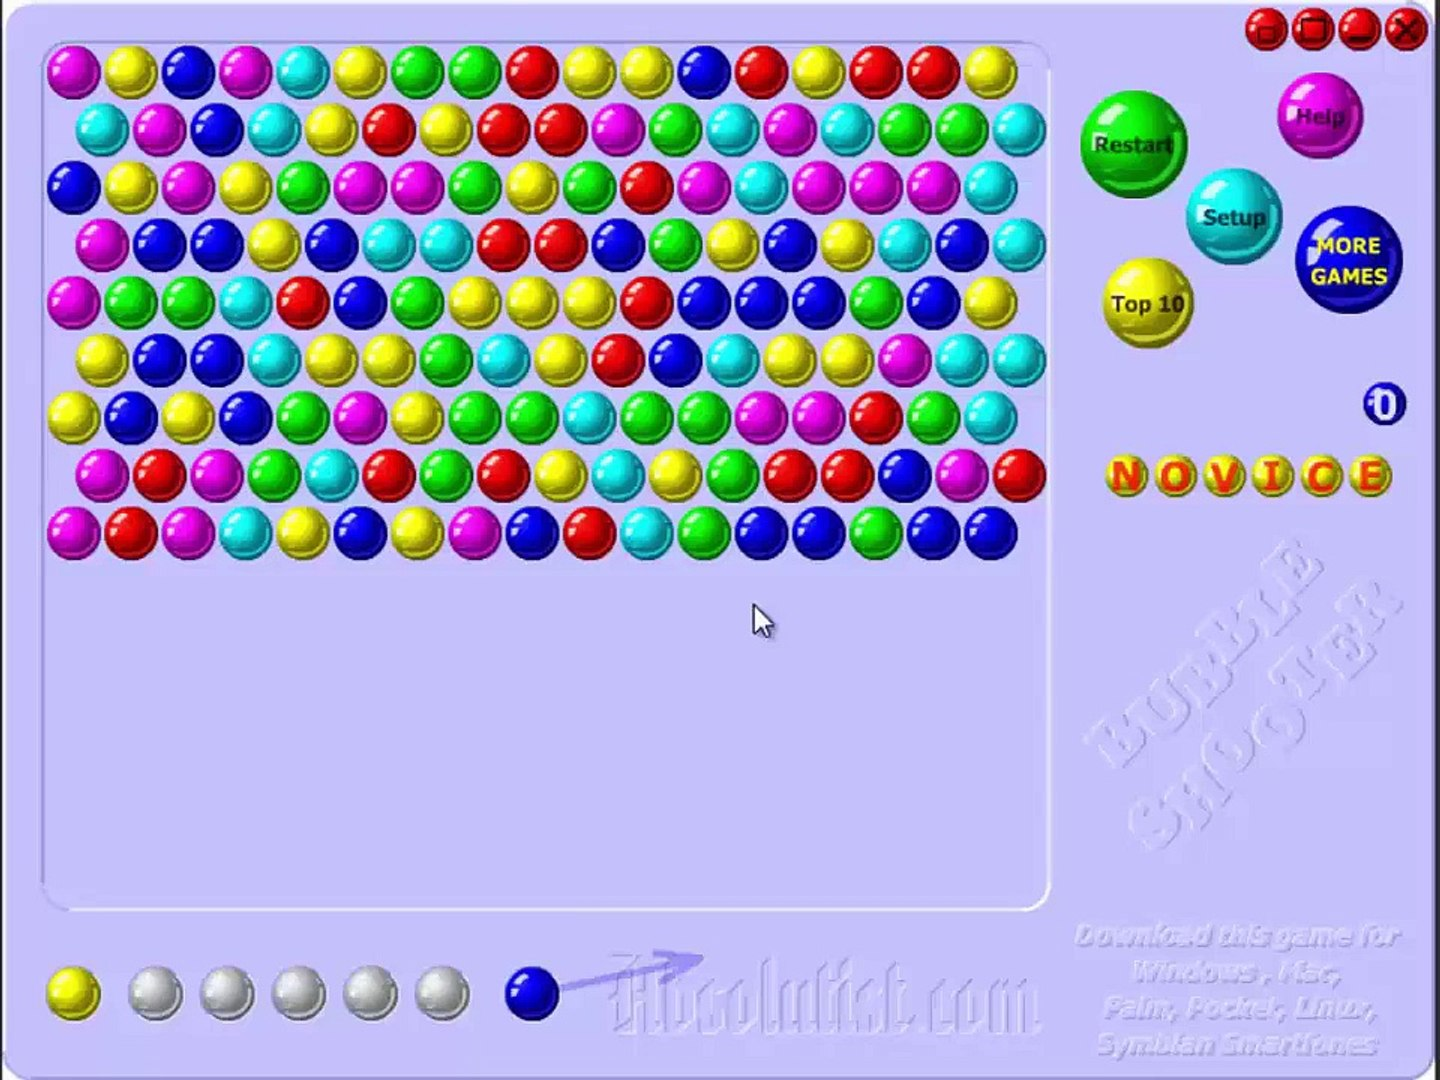 [ GamePlay Video ] Bubble Shooter Gameplay